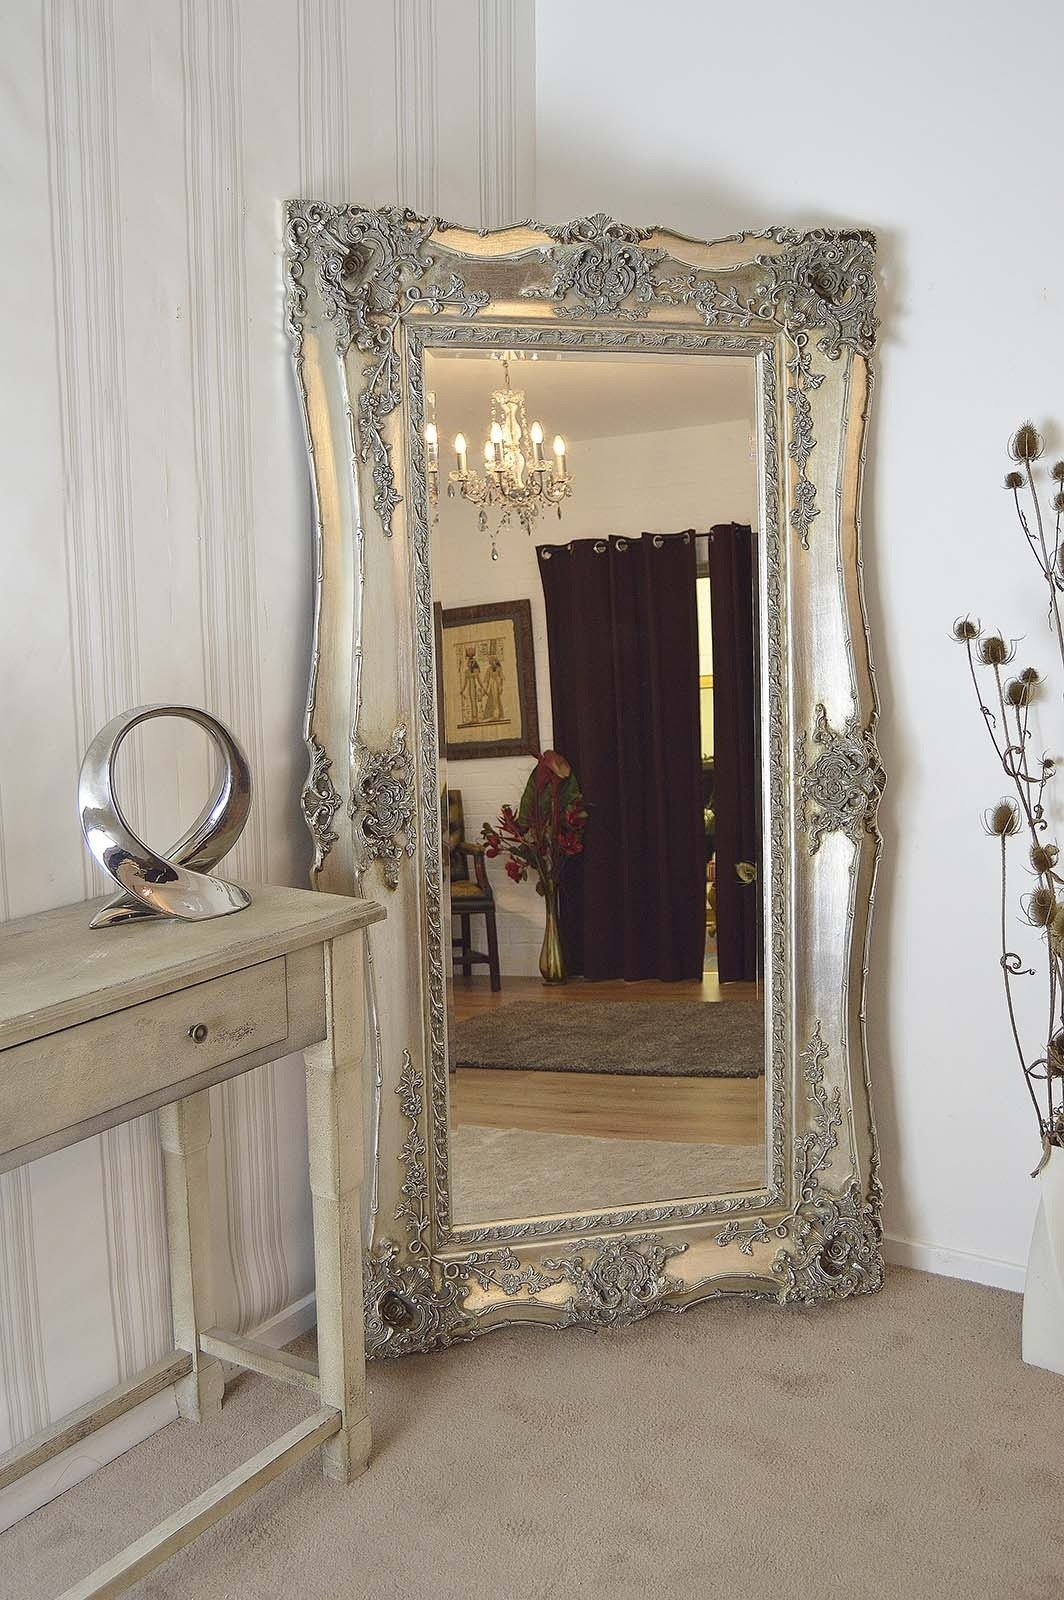 Bedroom Furniture Large Gold Mirror Free Standing Mirror Wooden Regarding Large Gold Antique Mirror (Image 3 of 15)